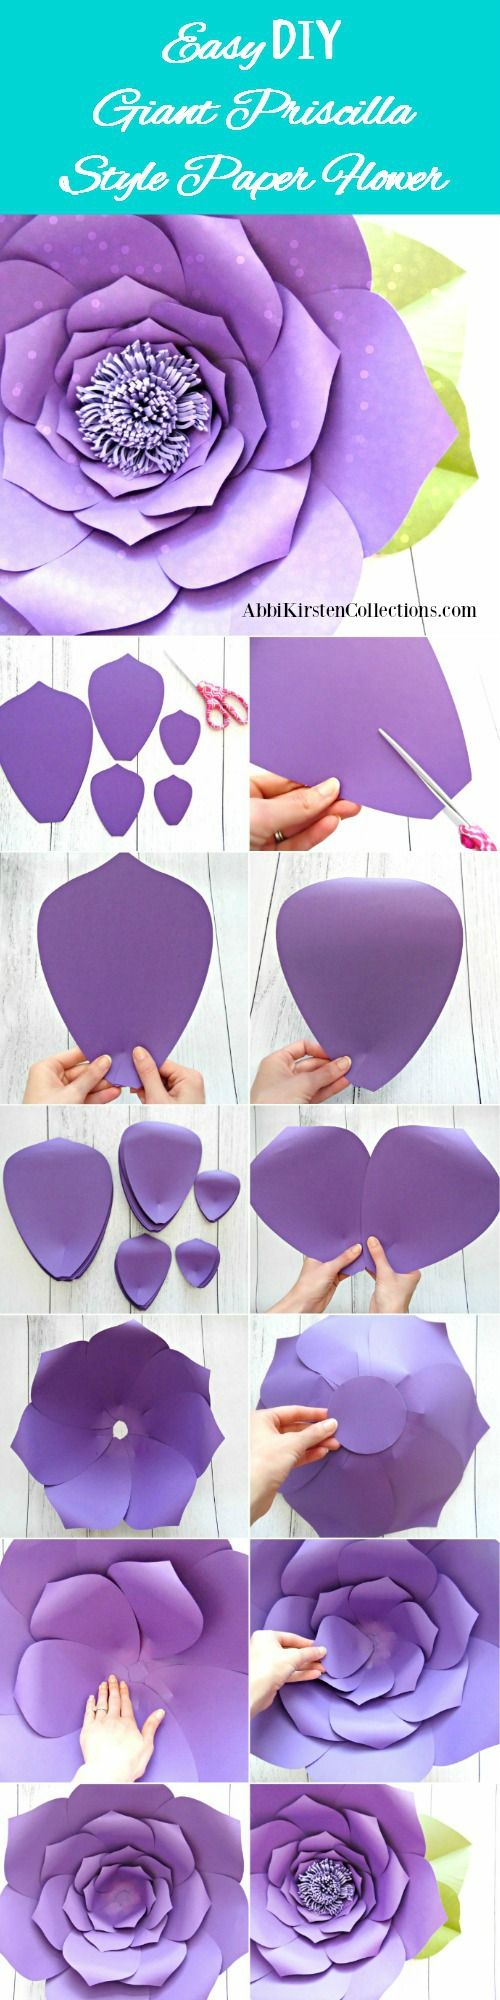 How to make large paper flowers easy diy giant paper flower for printable giant paper flower templates easy diy giant paper flowers flower tutorials abbikirstencollections mightylinksfo